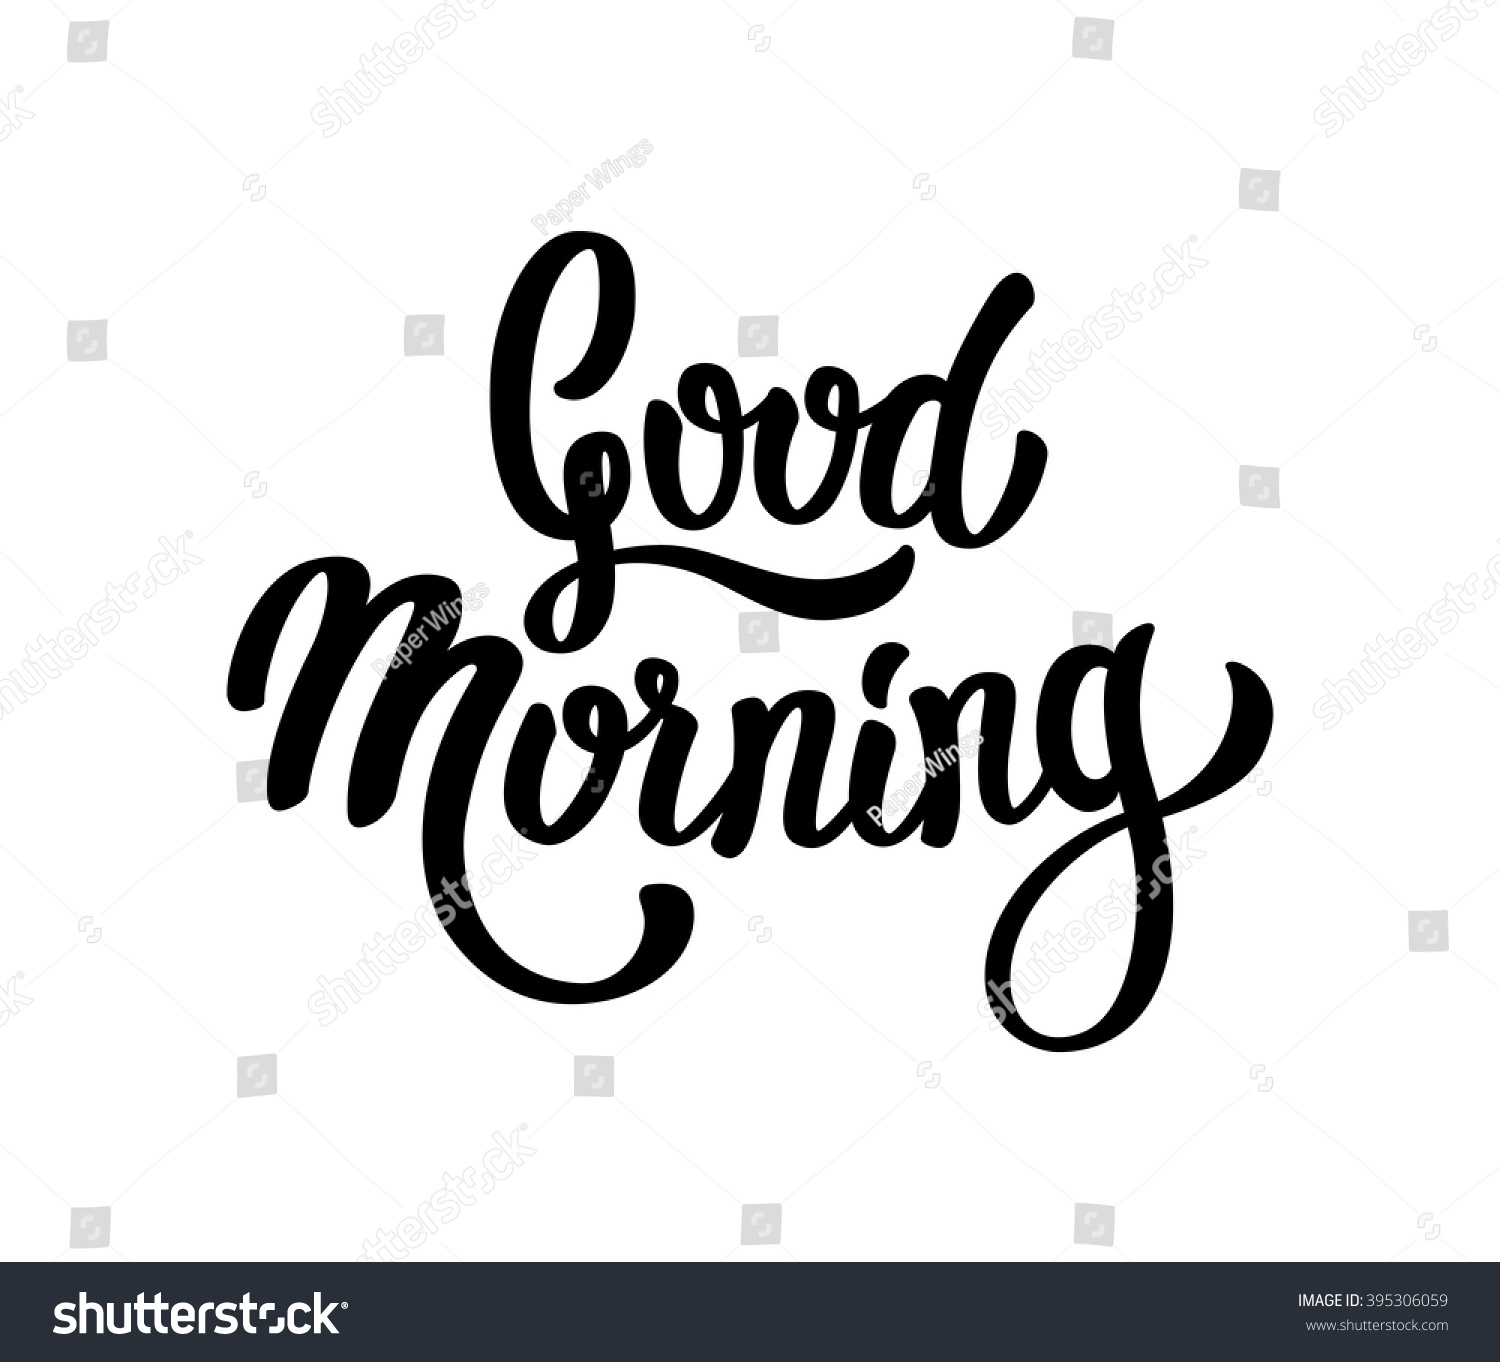 Good Morning Spanish Text : Good morning lettering text stock vector